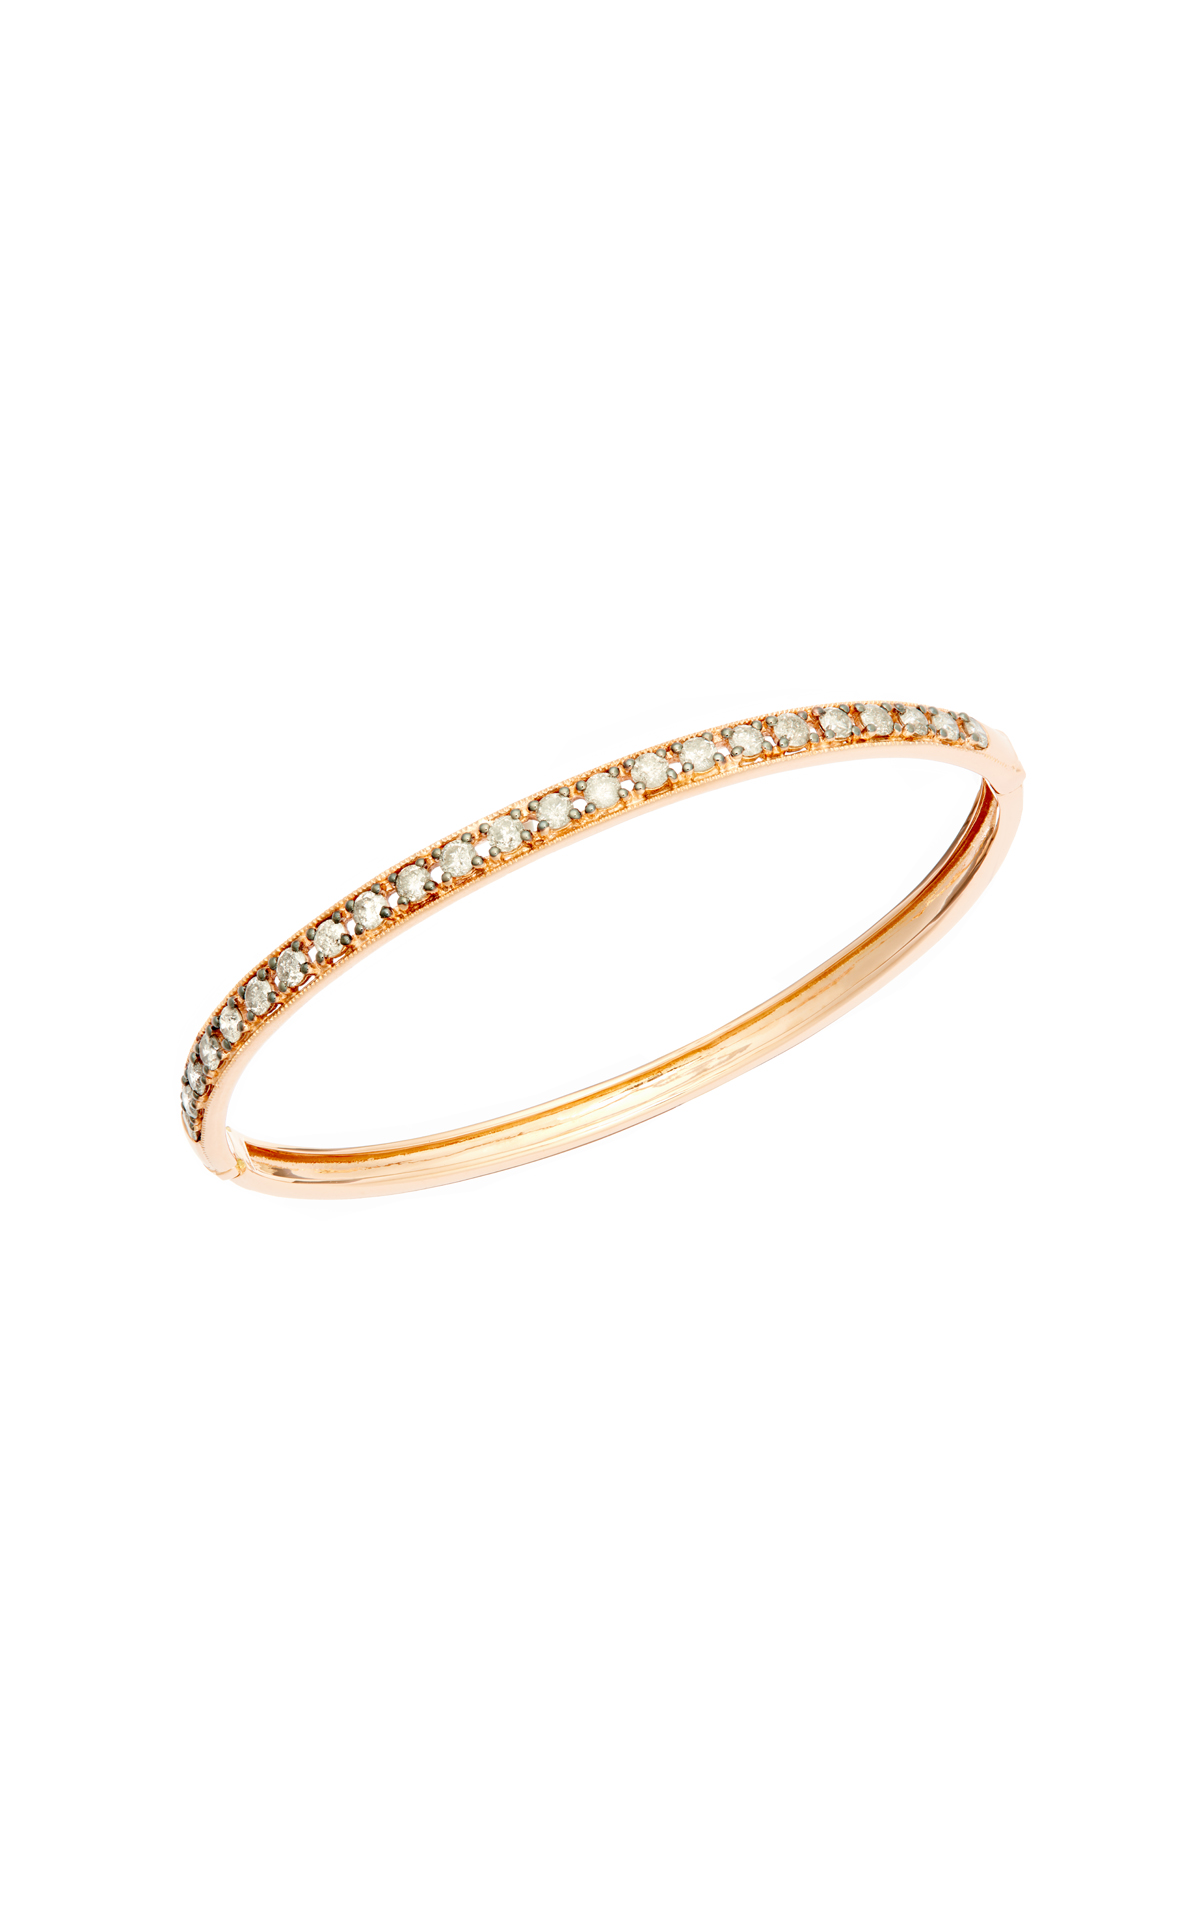 Annoushka Dusty diamond bangle from Bicester Village